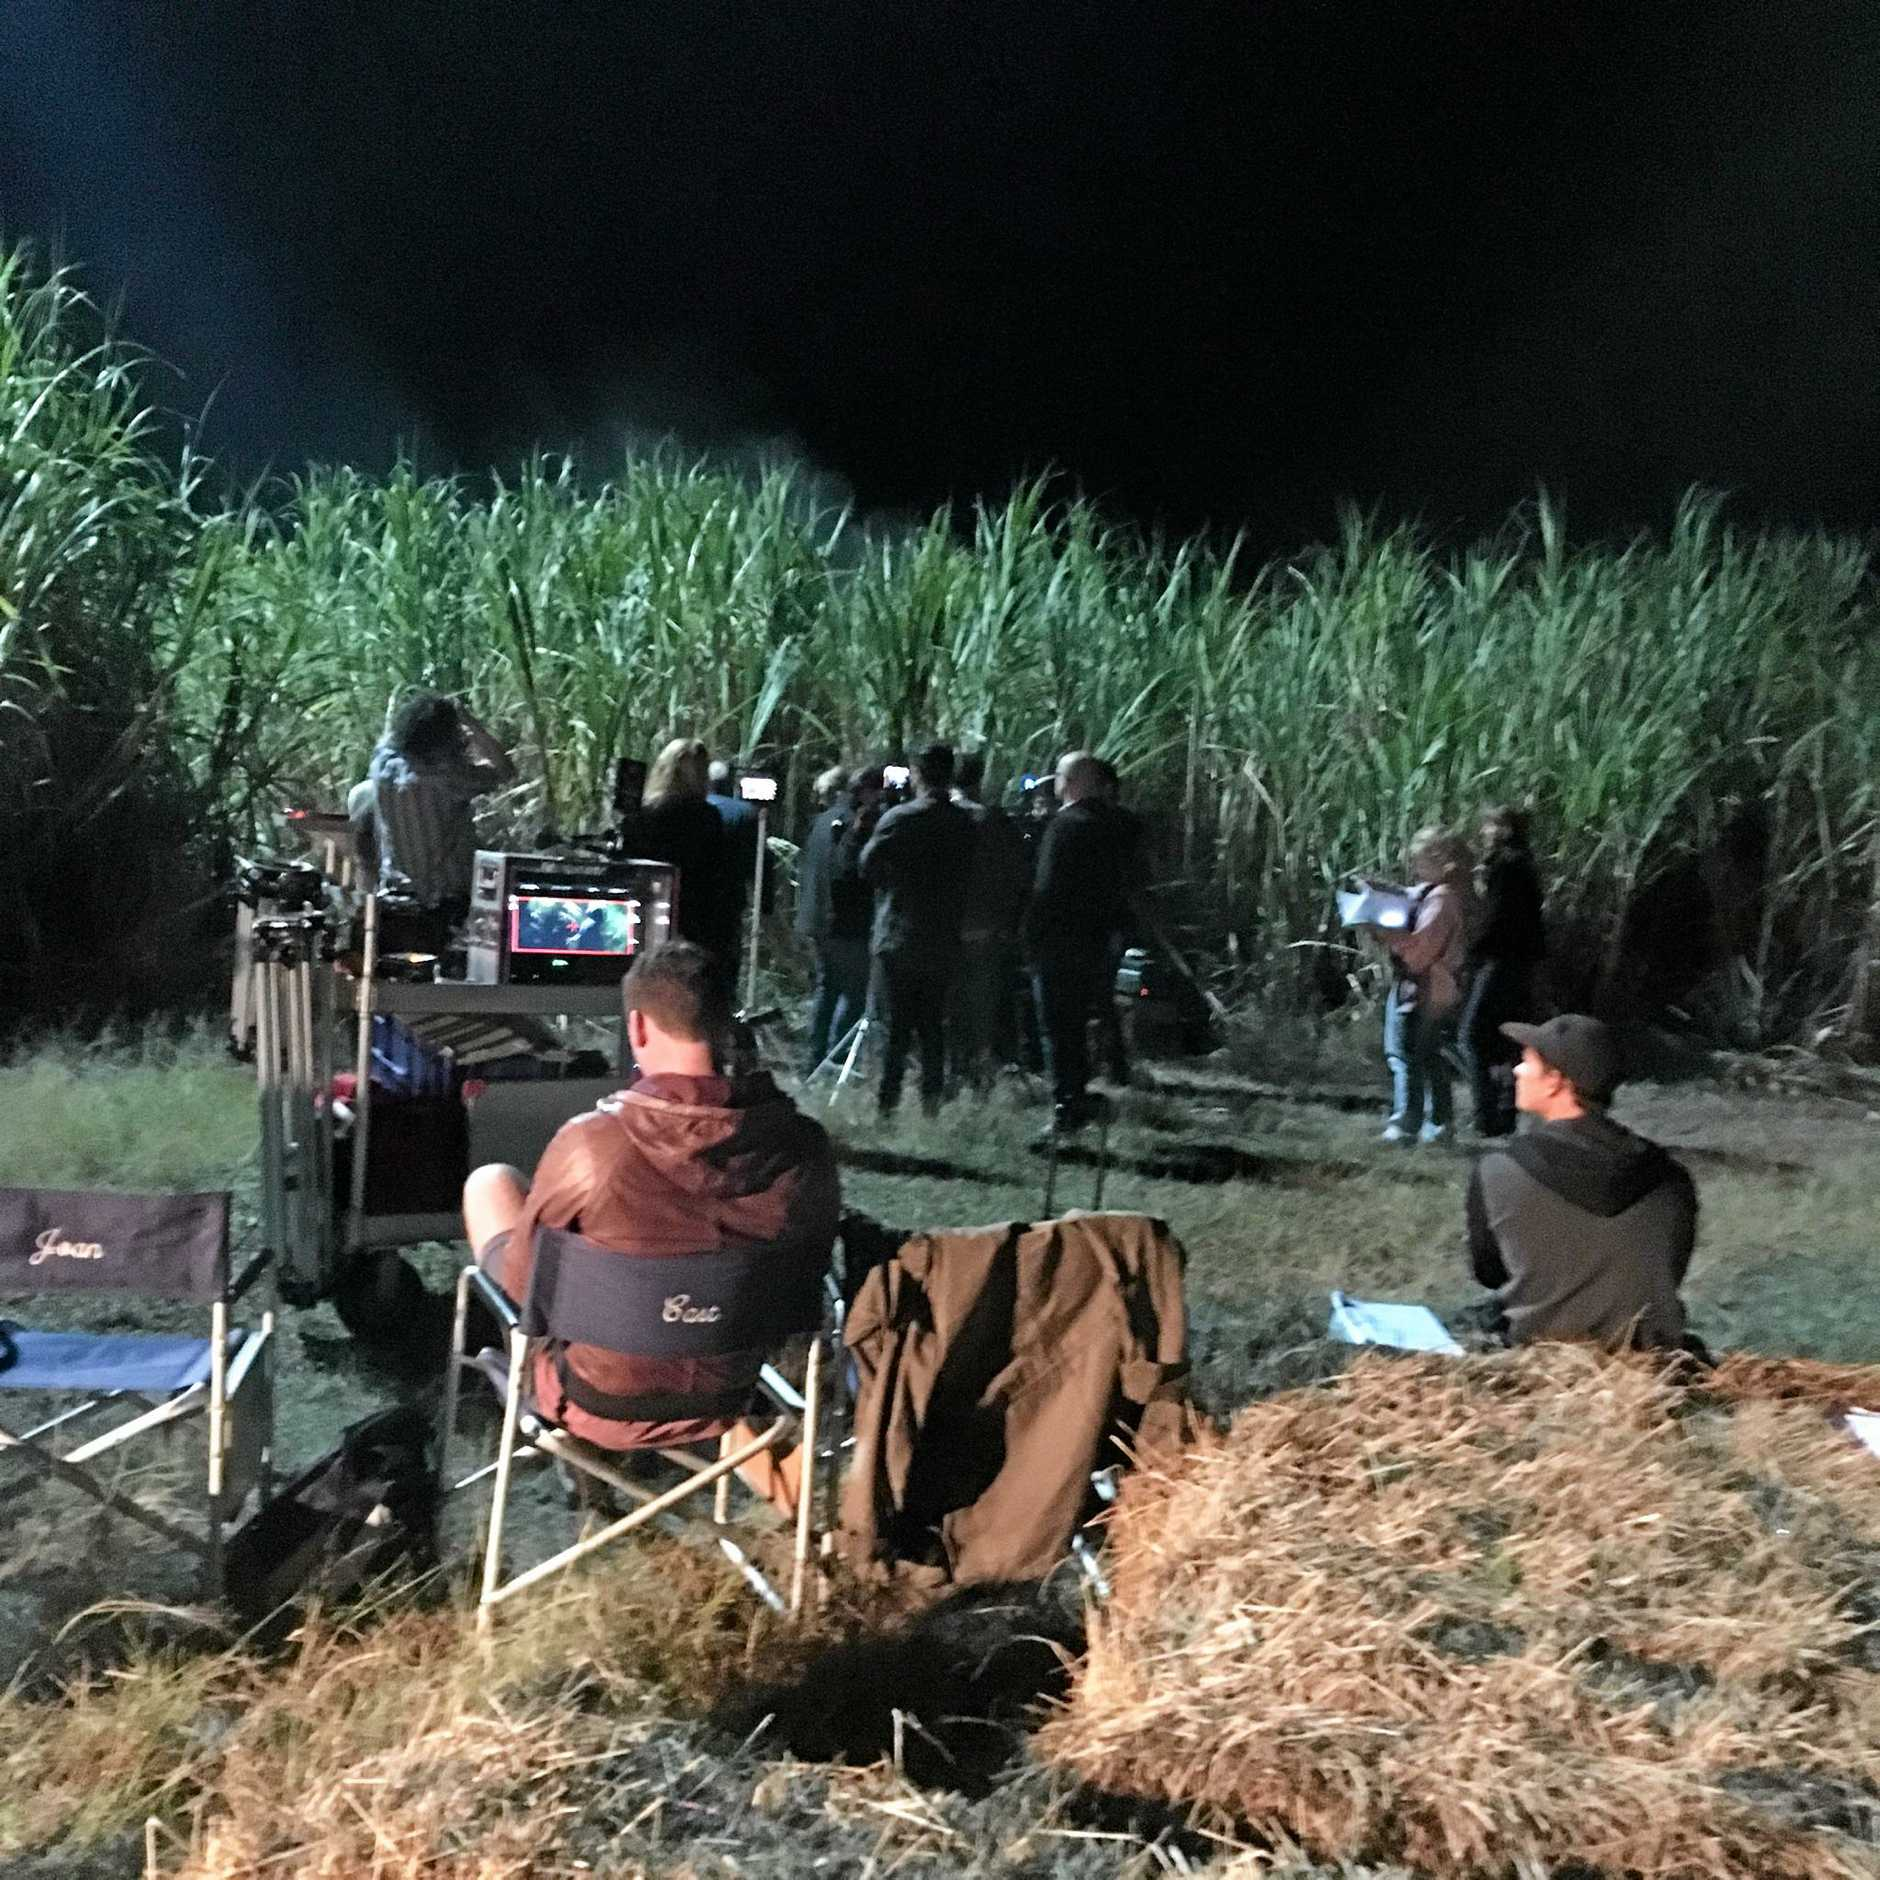 NOW FILMING: Images taken from an outdoor set near Ross Lane, Lennox Head during the five-week shoot of Scarlett, a locally made $2.7 million budget supernatural thriller.